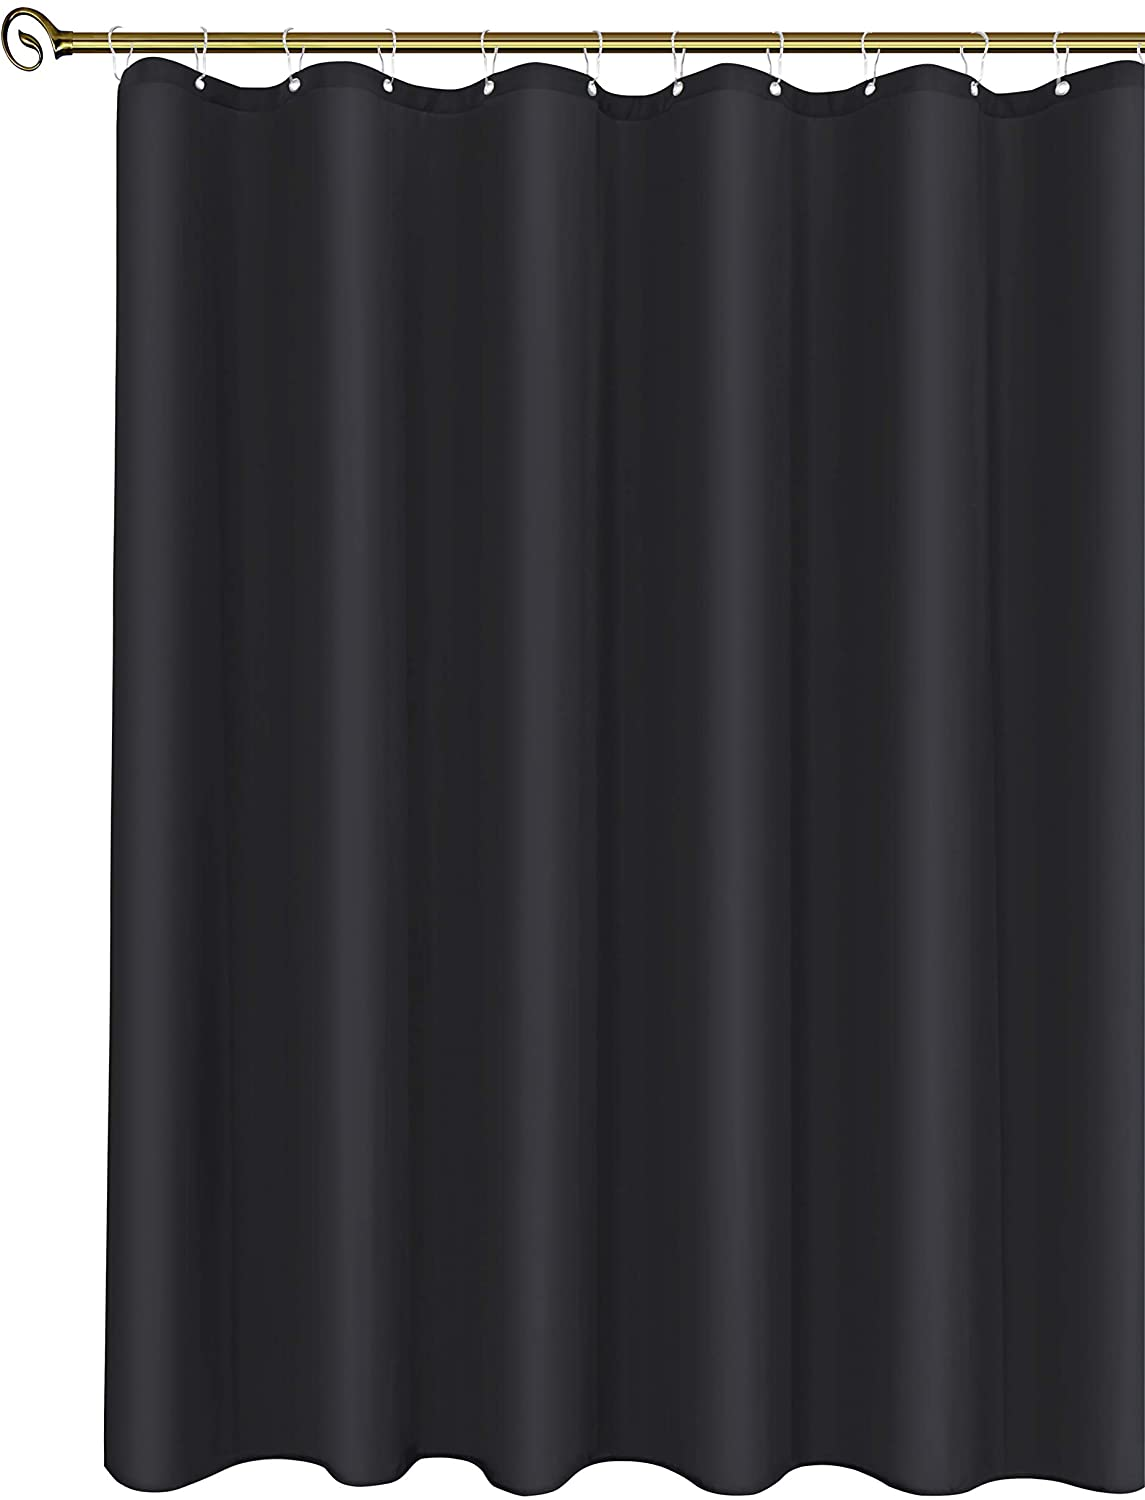 Black 54 Inch Width by 72 Inch Length Rust Resistant Grommets Top Weighted Bottom Machine Washable Water Resistant Bathroom Curtains Biscaynebay Hotel Quality Fabric Shower Stall Curtain Liners